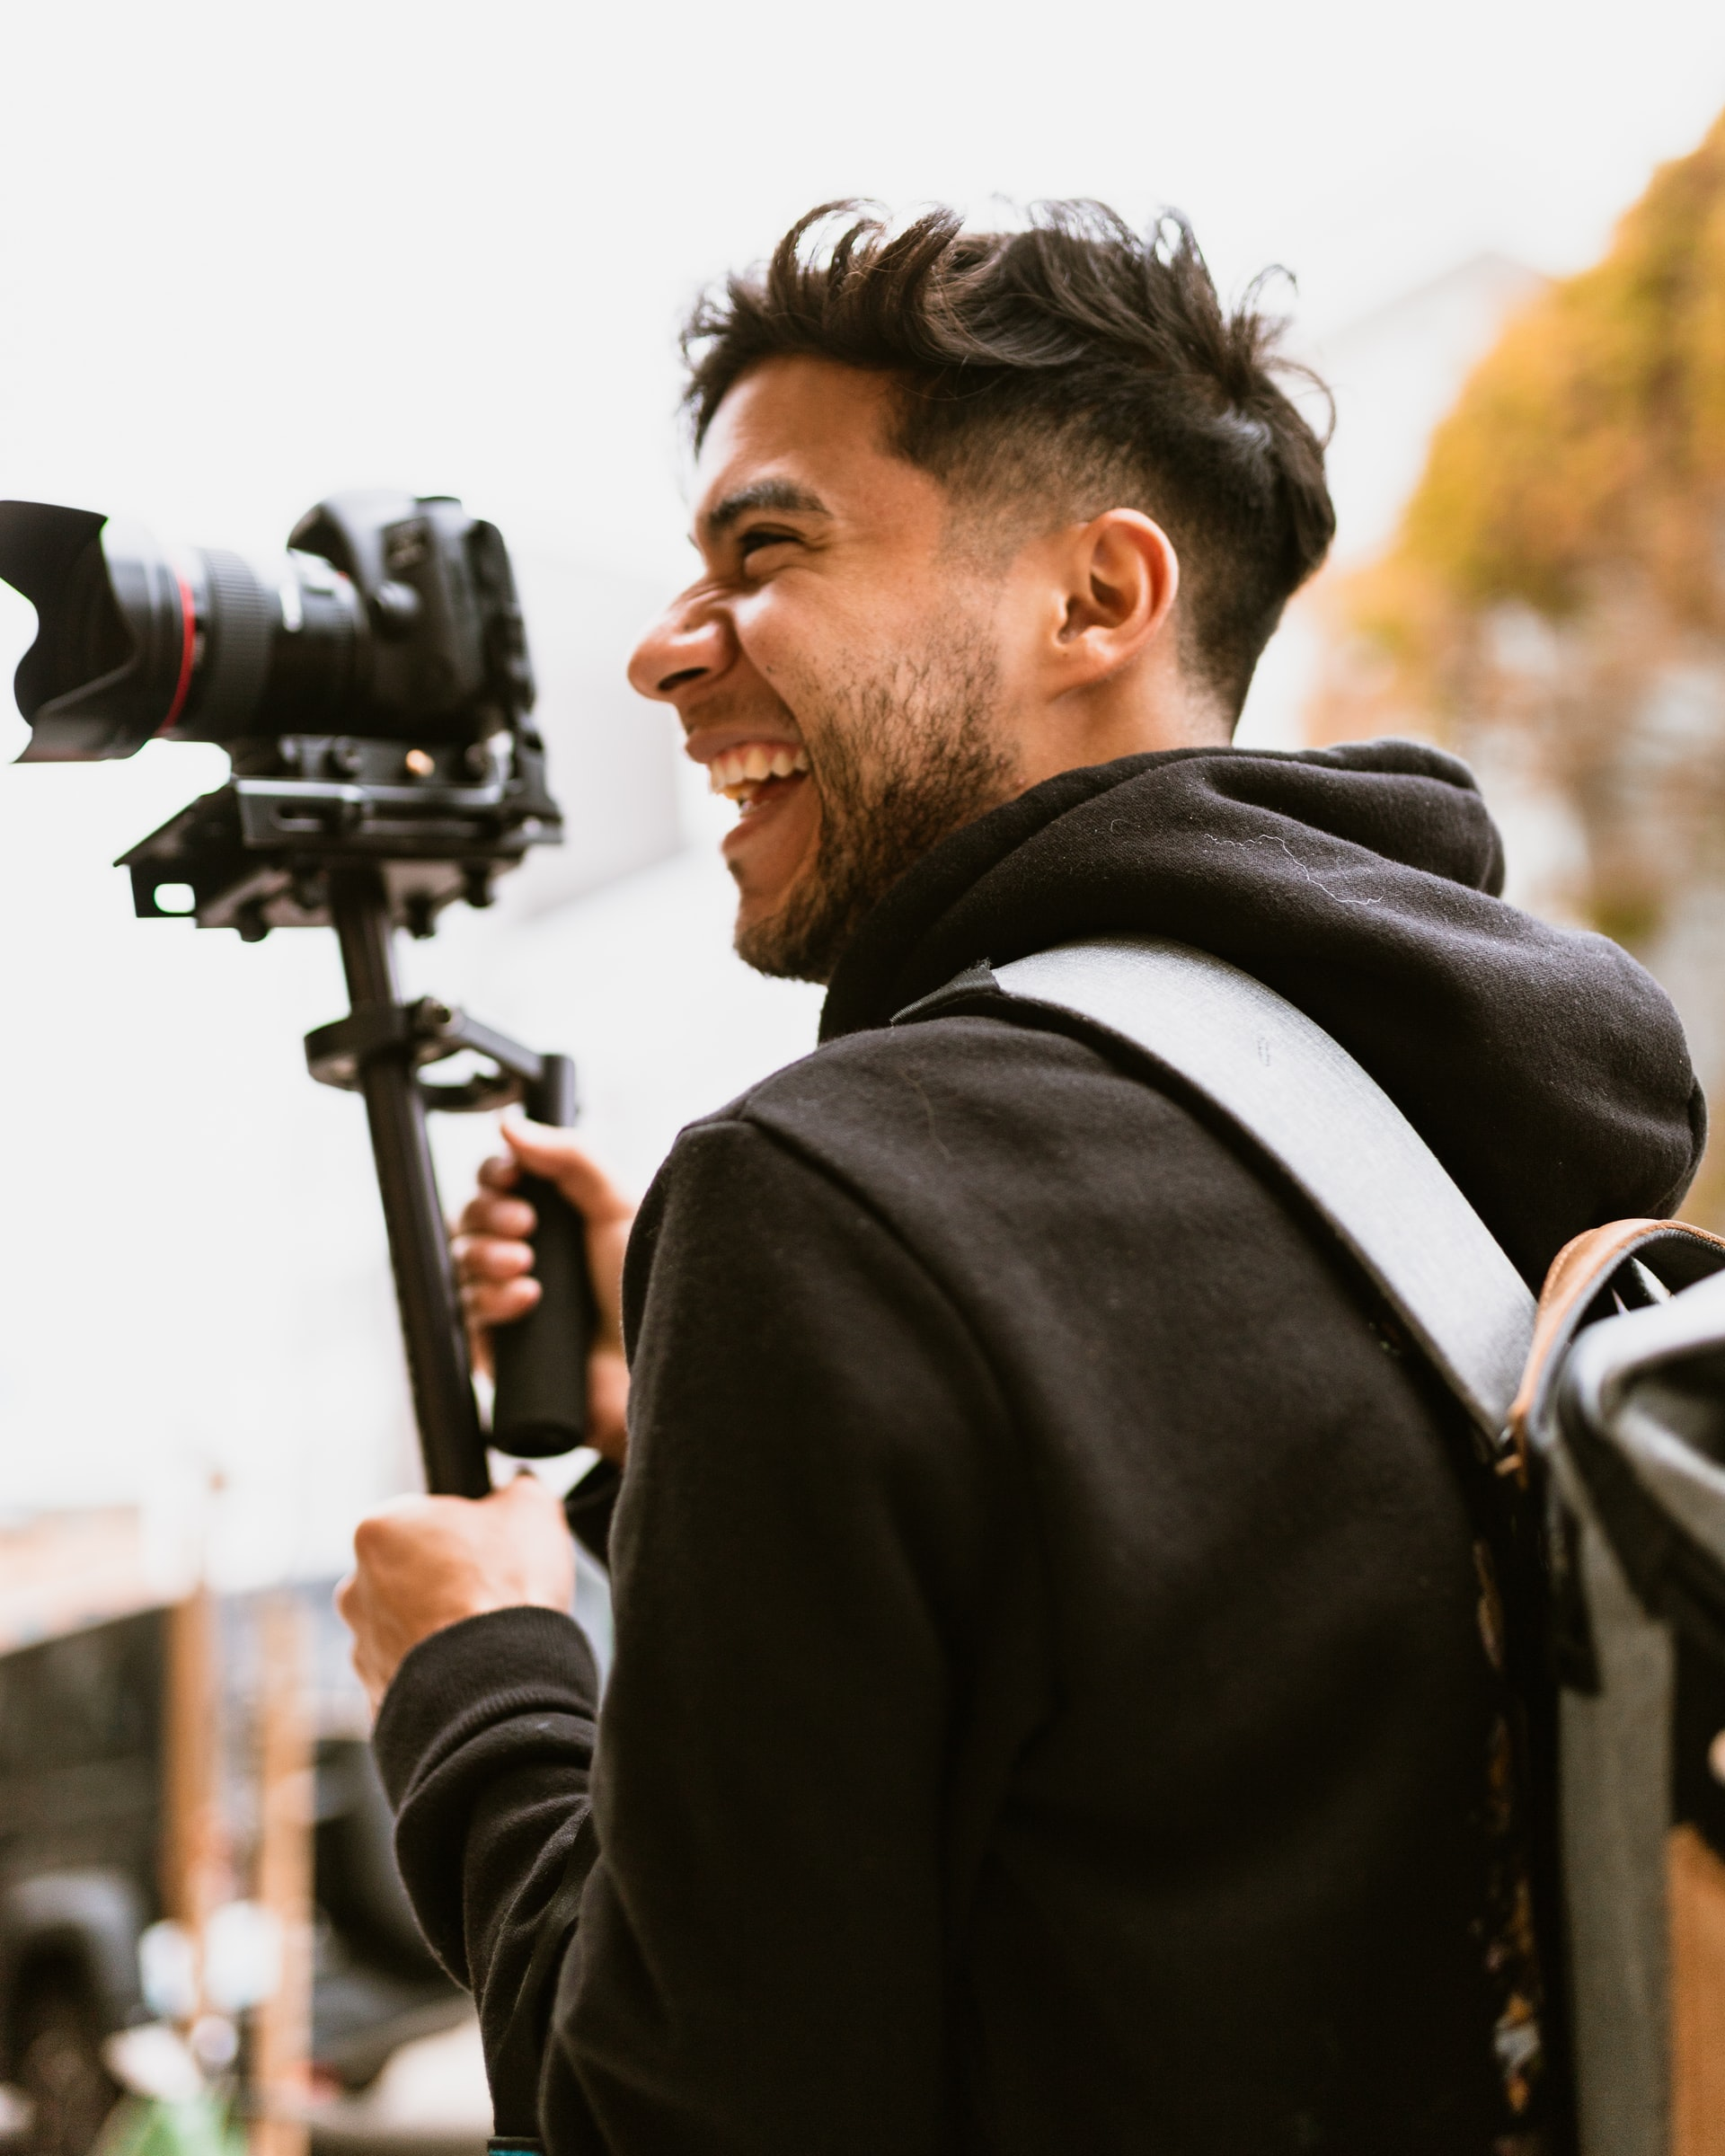 What to Look For in a Monopod image